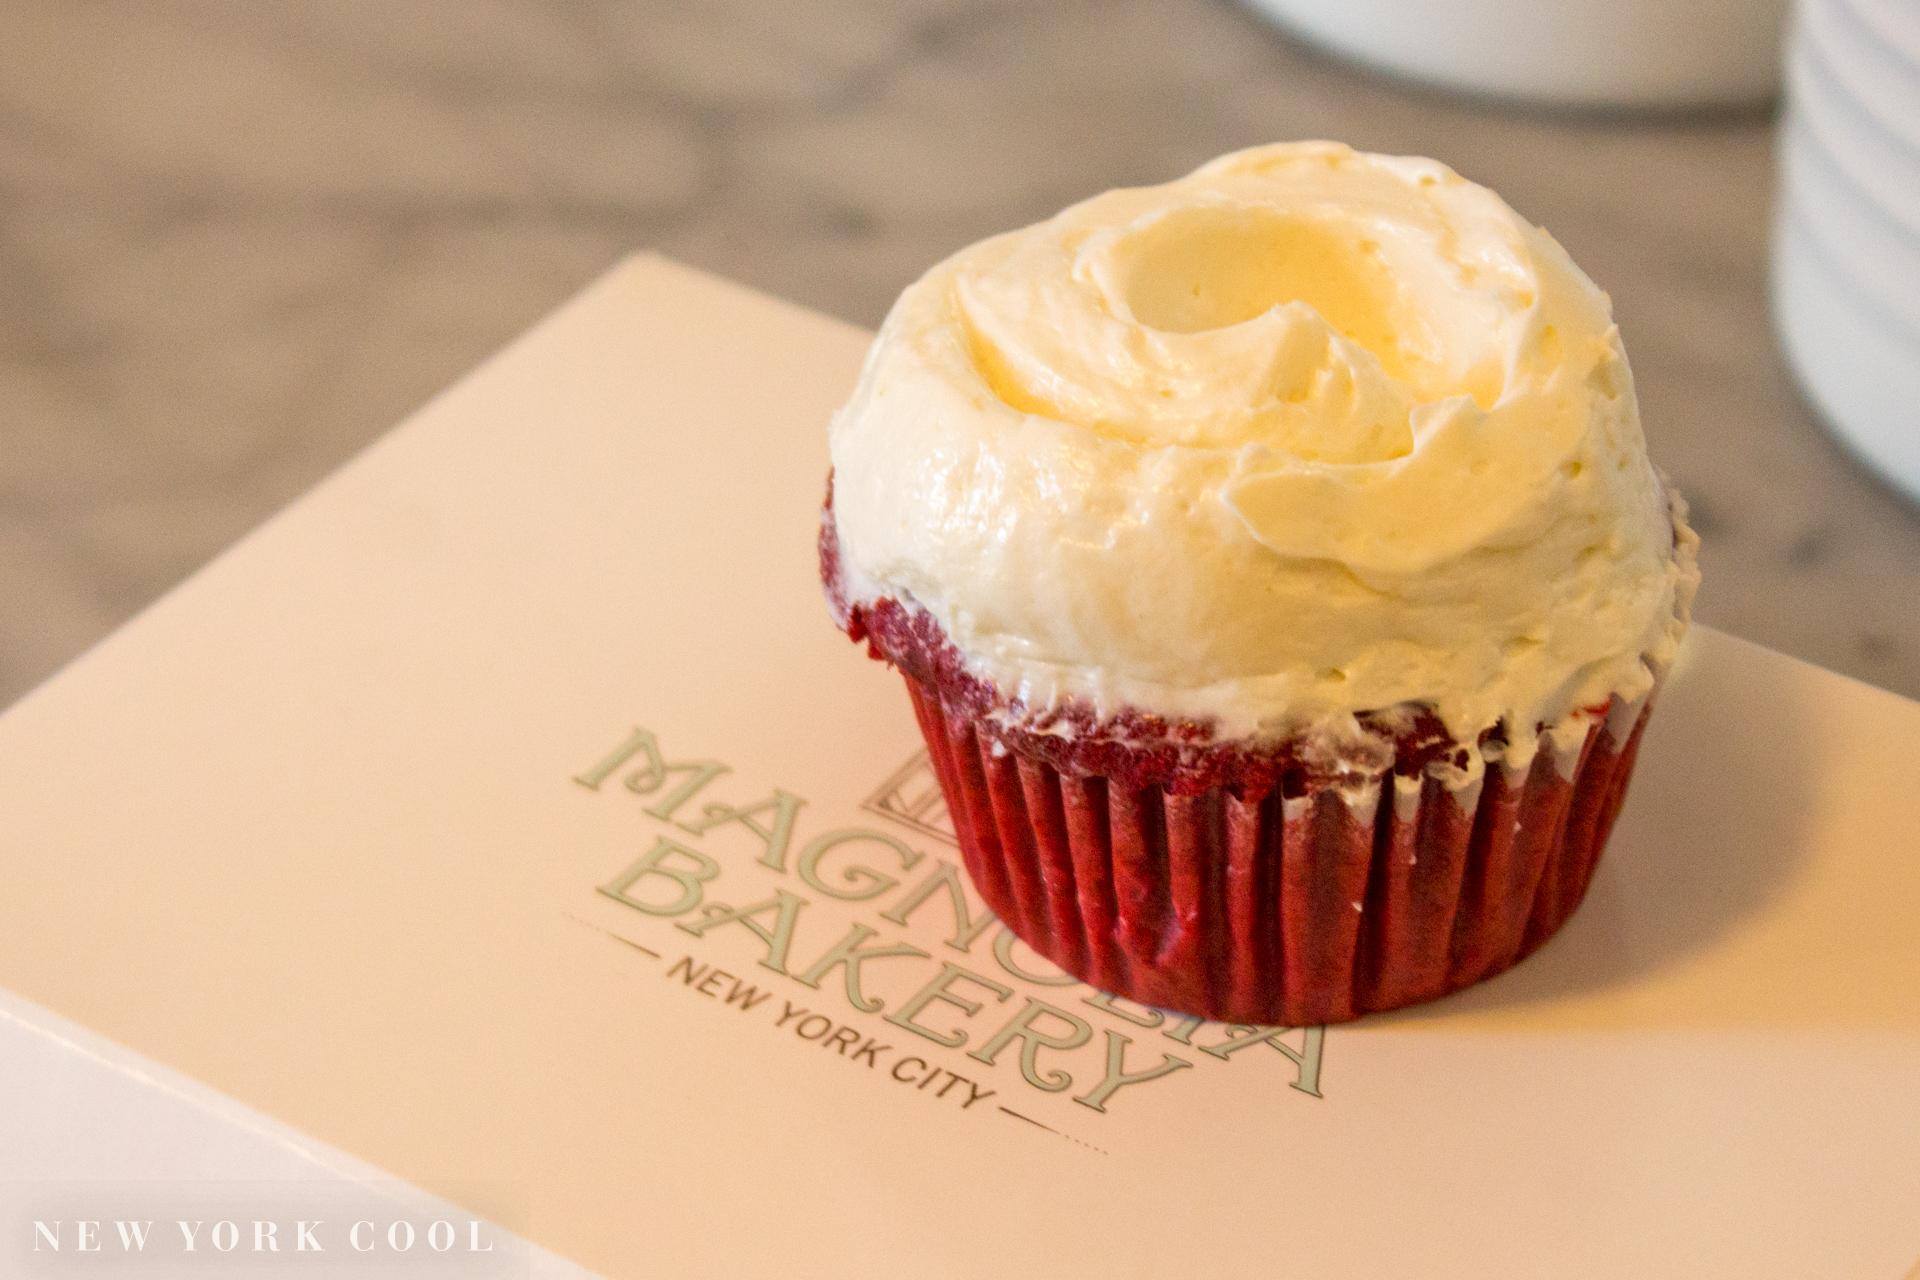 NewYork Cool - Mingle - Magnolia Bakery